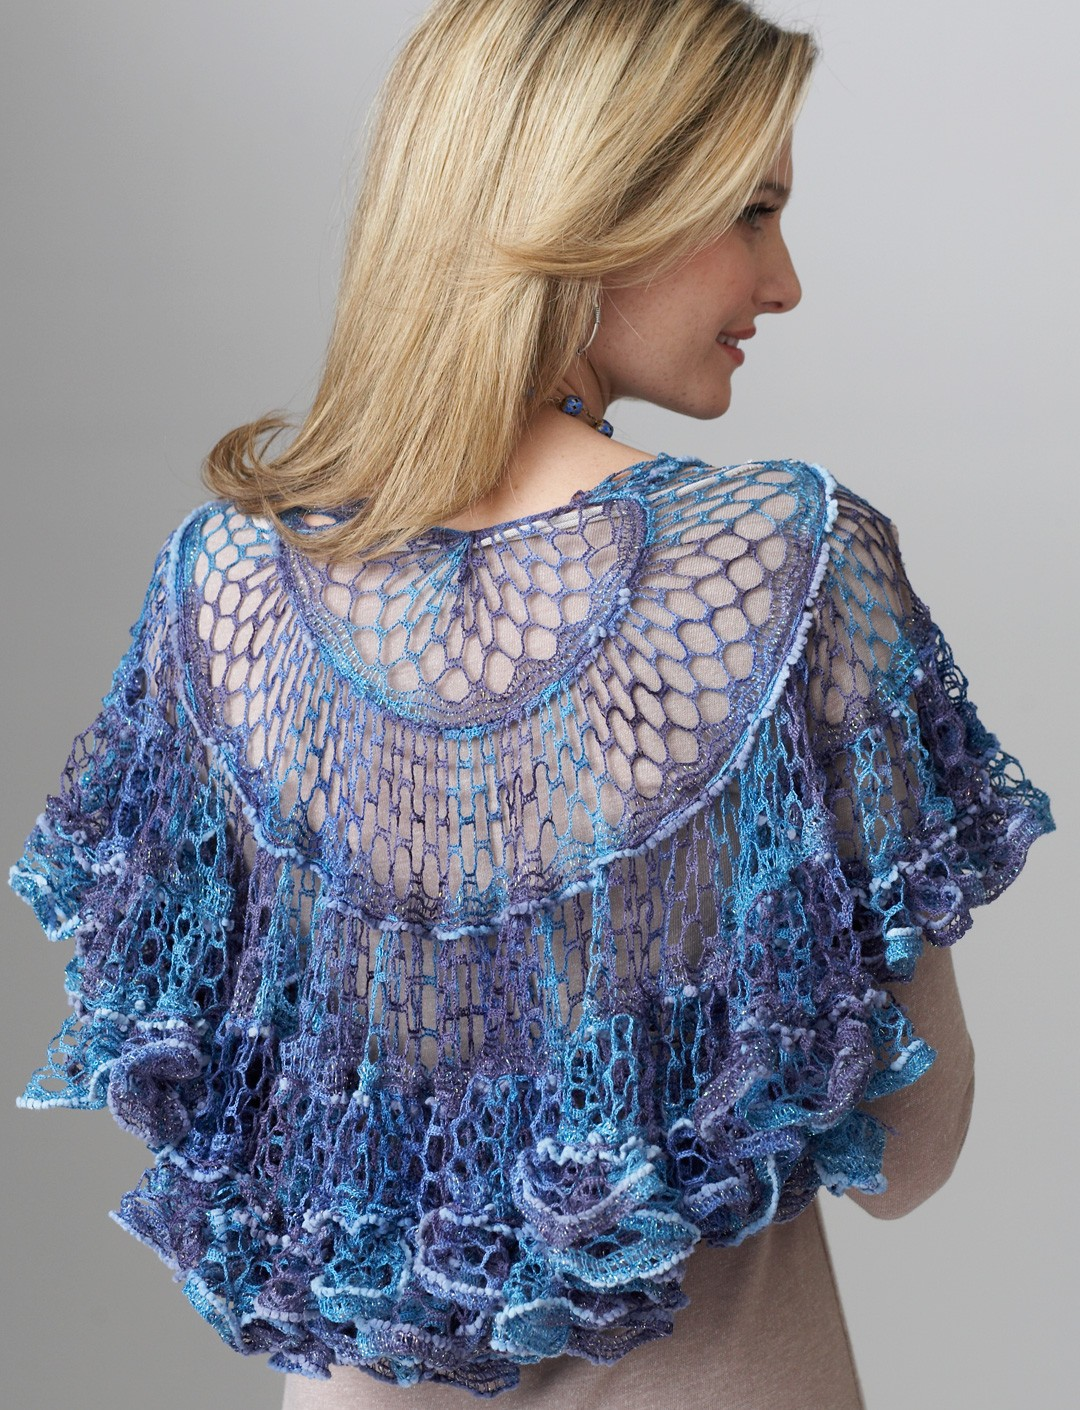 Crochet Patterns With Super Fine Yarn : Shawl Yarnspirations